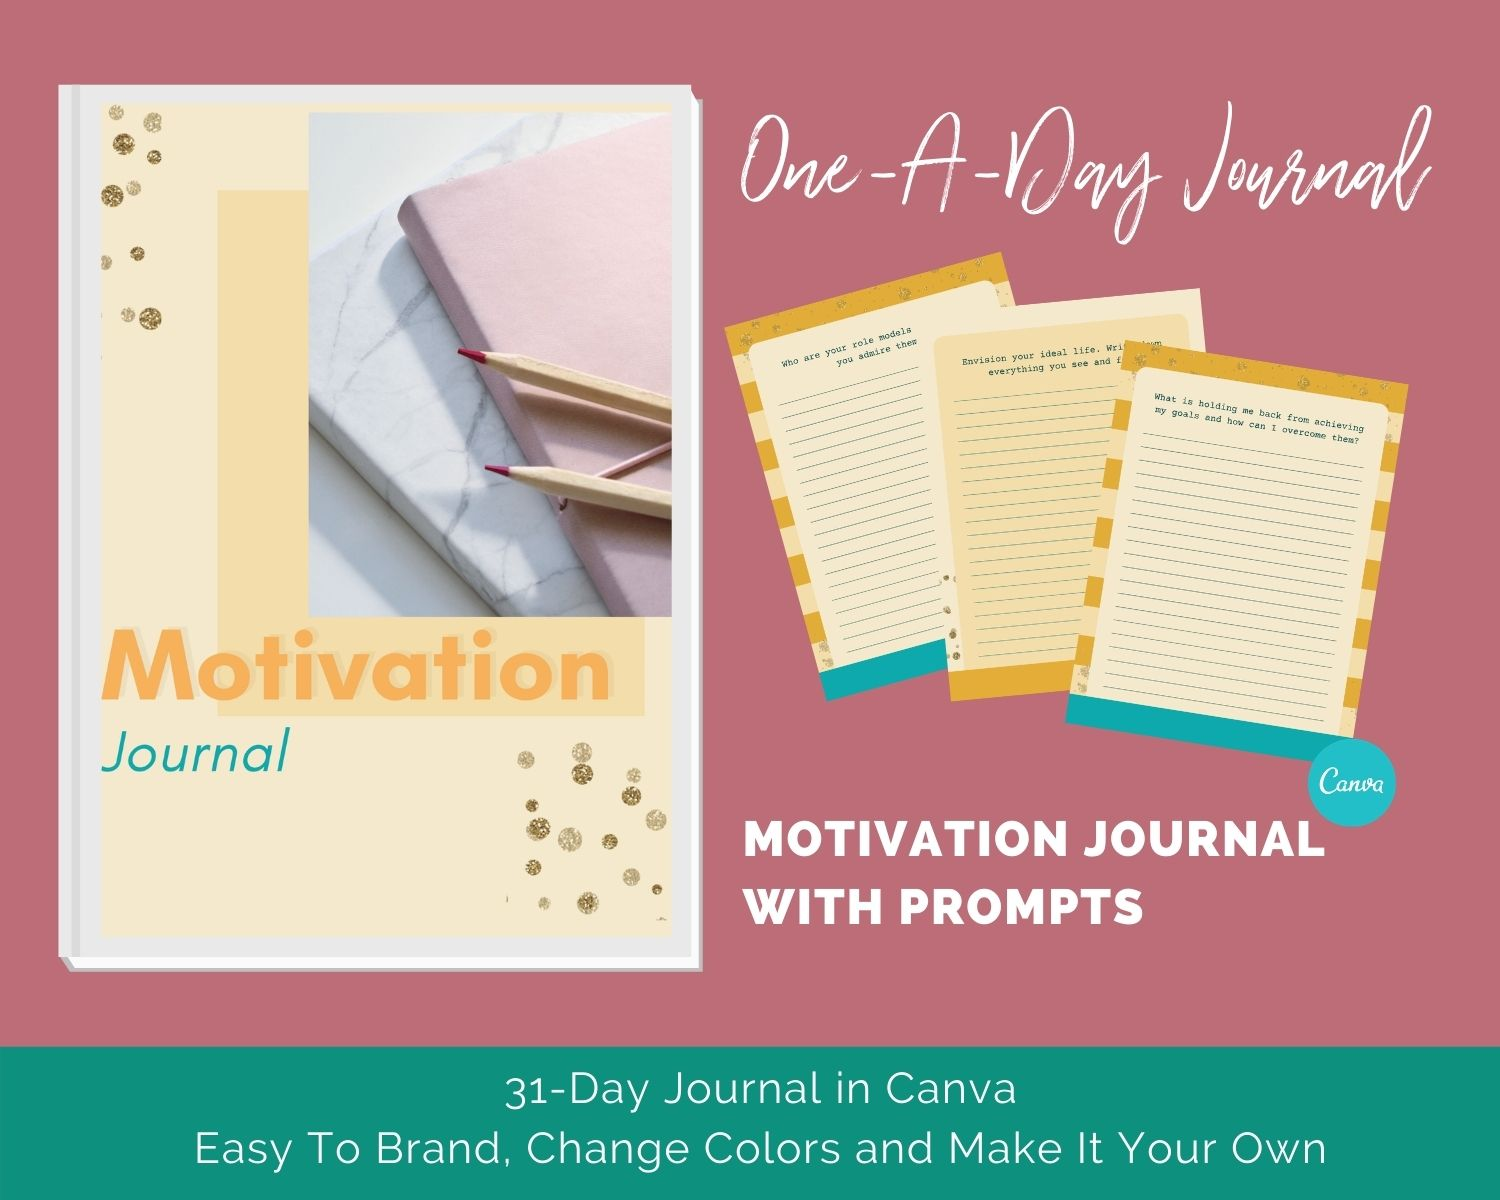 MotivationJournalMockup2